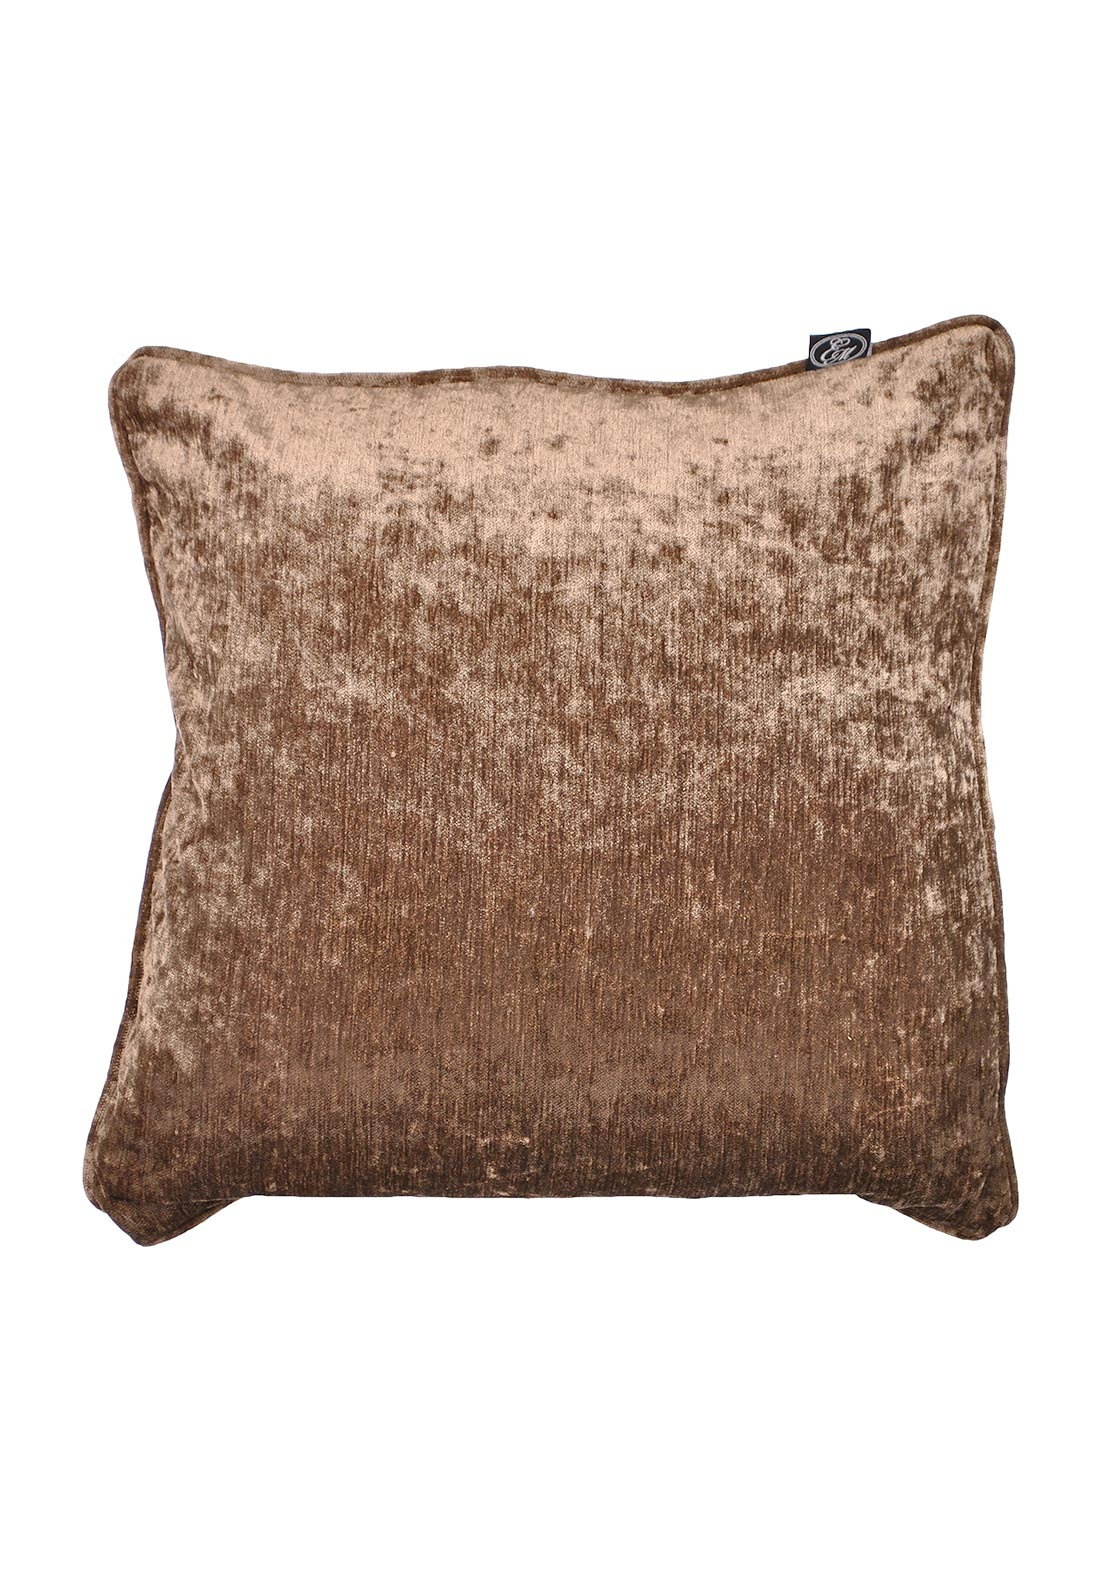 Emily Mc Guinness Lambada Square Cushion 45x45cm, Cinder